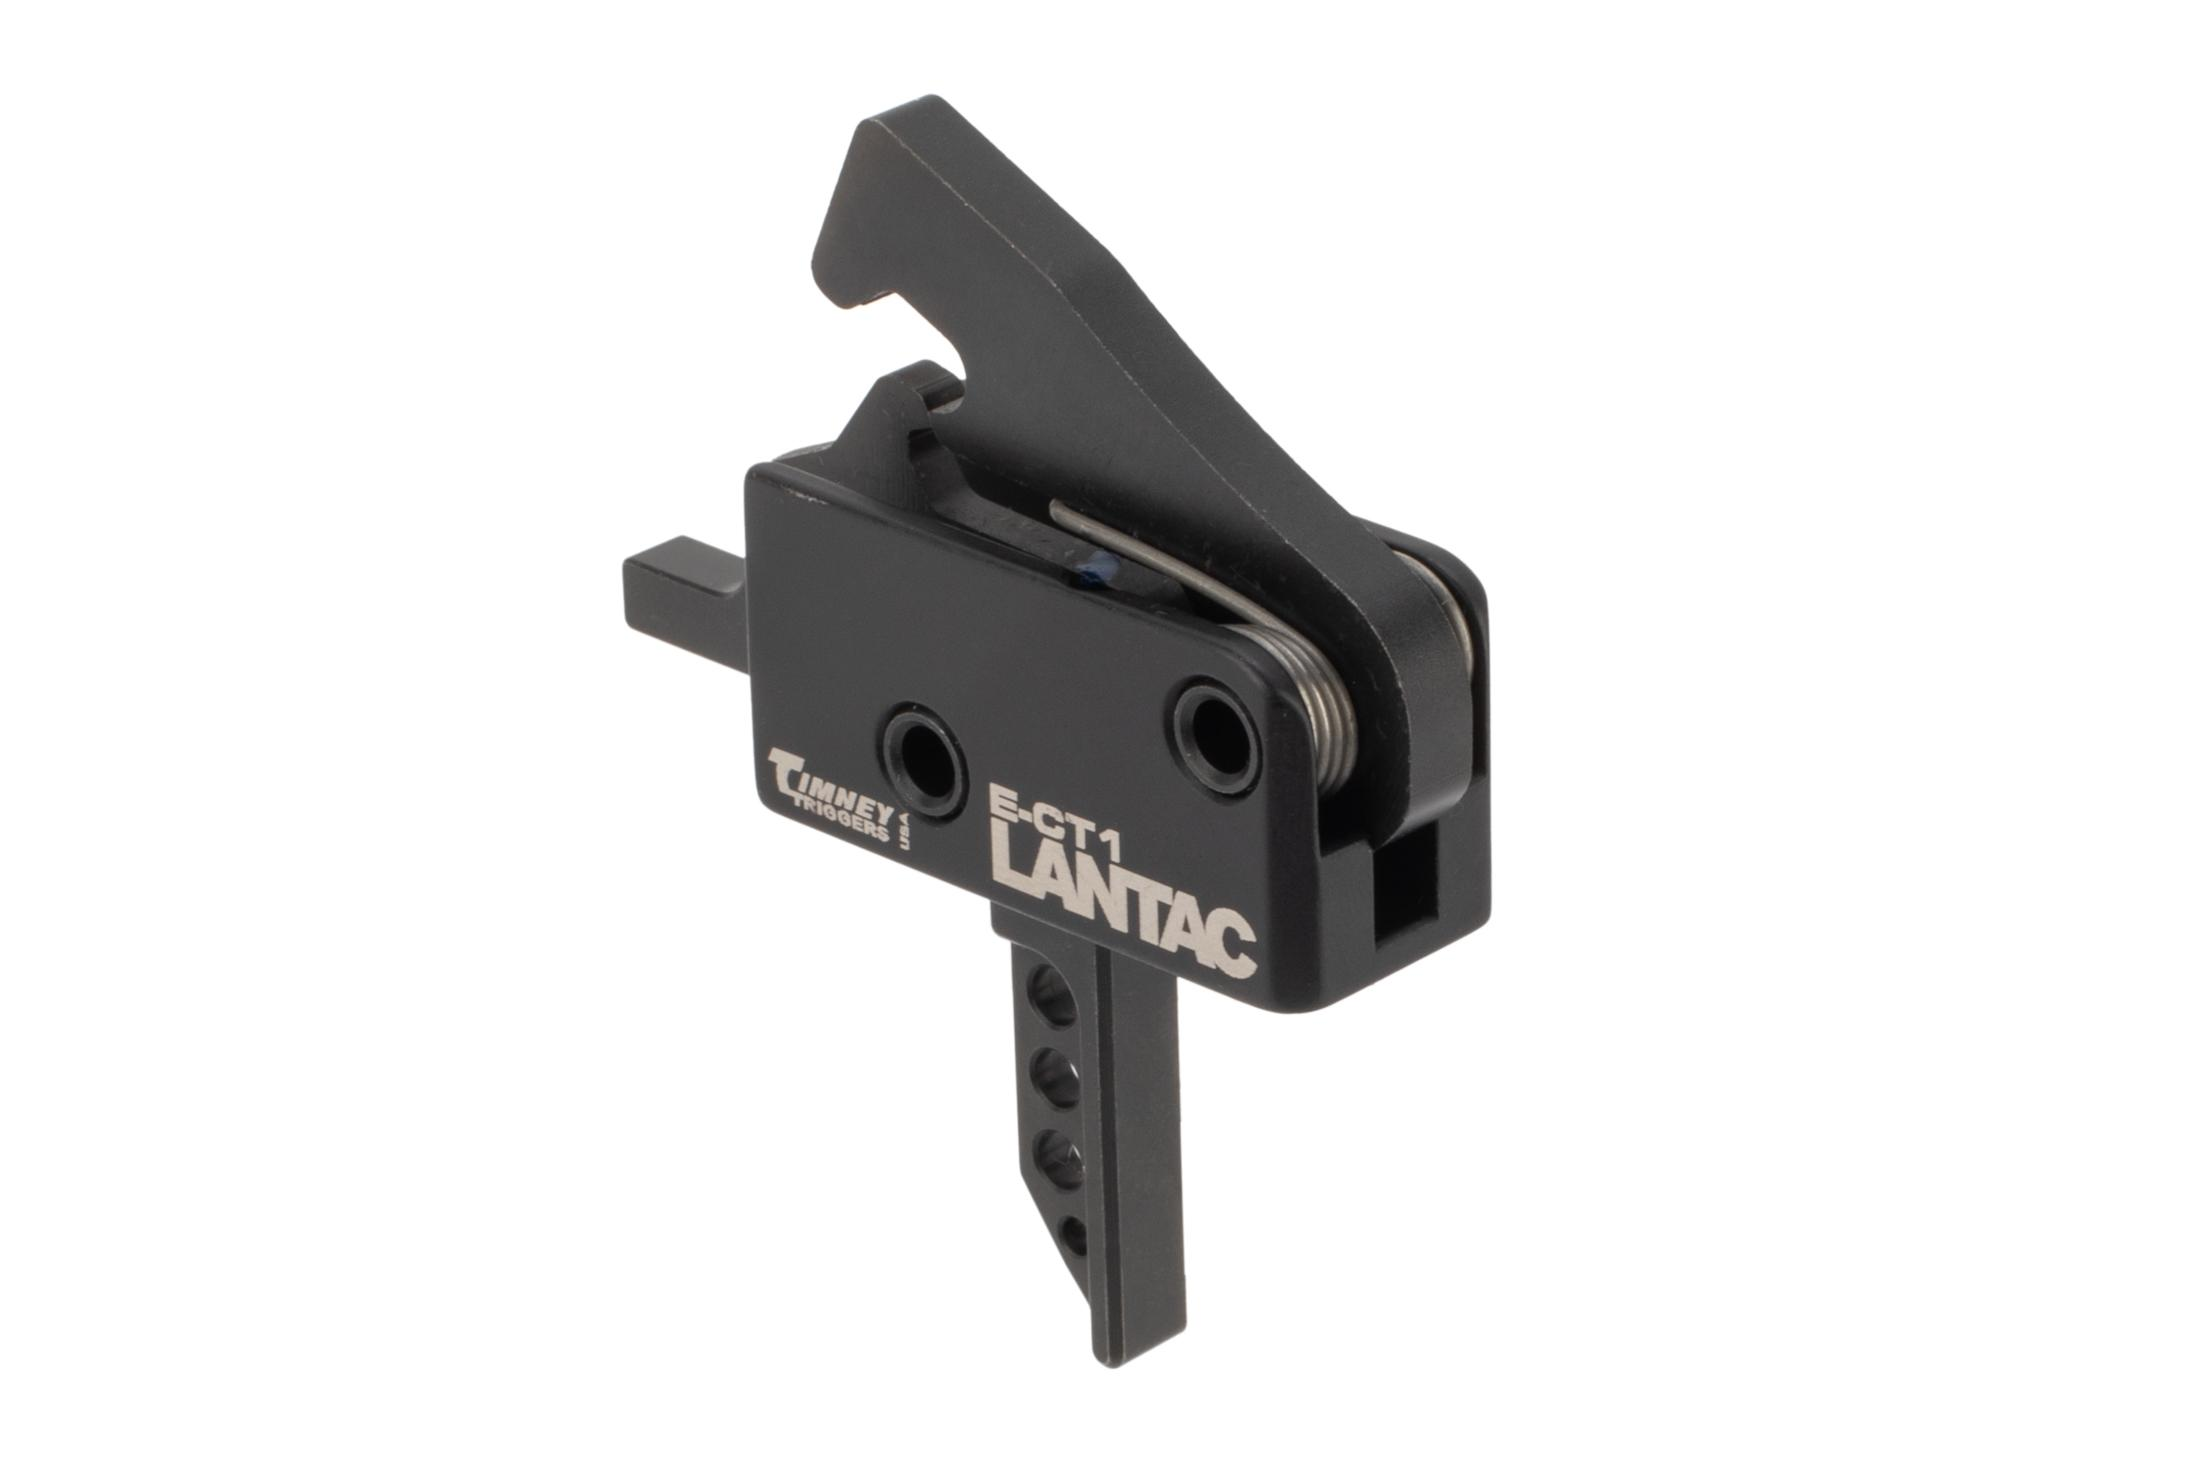 Lantac E-CT1 3.5LB Drop In Flat Trigger